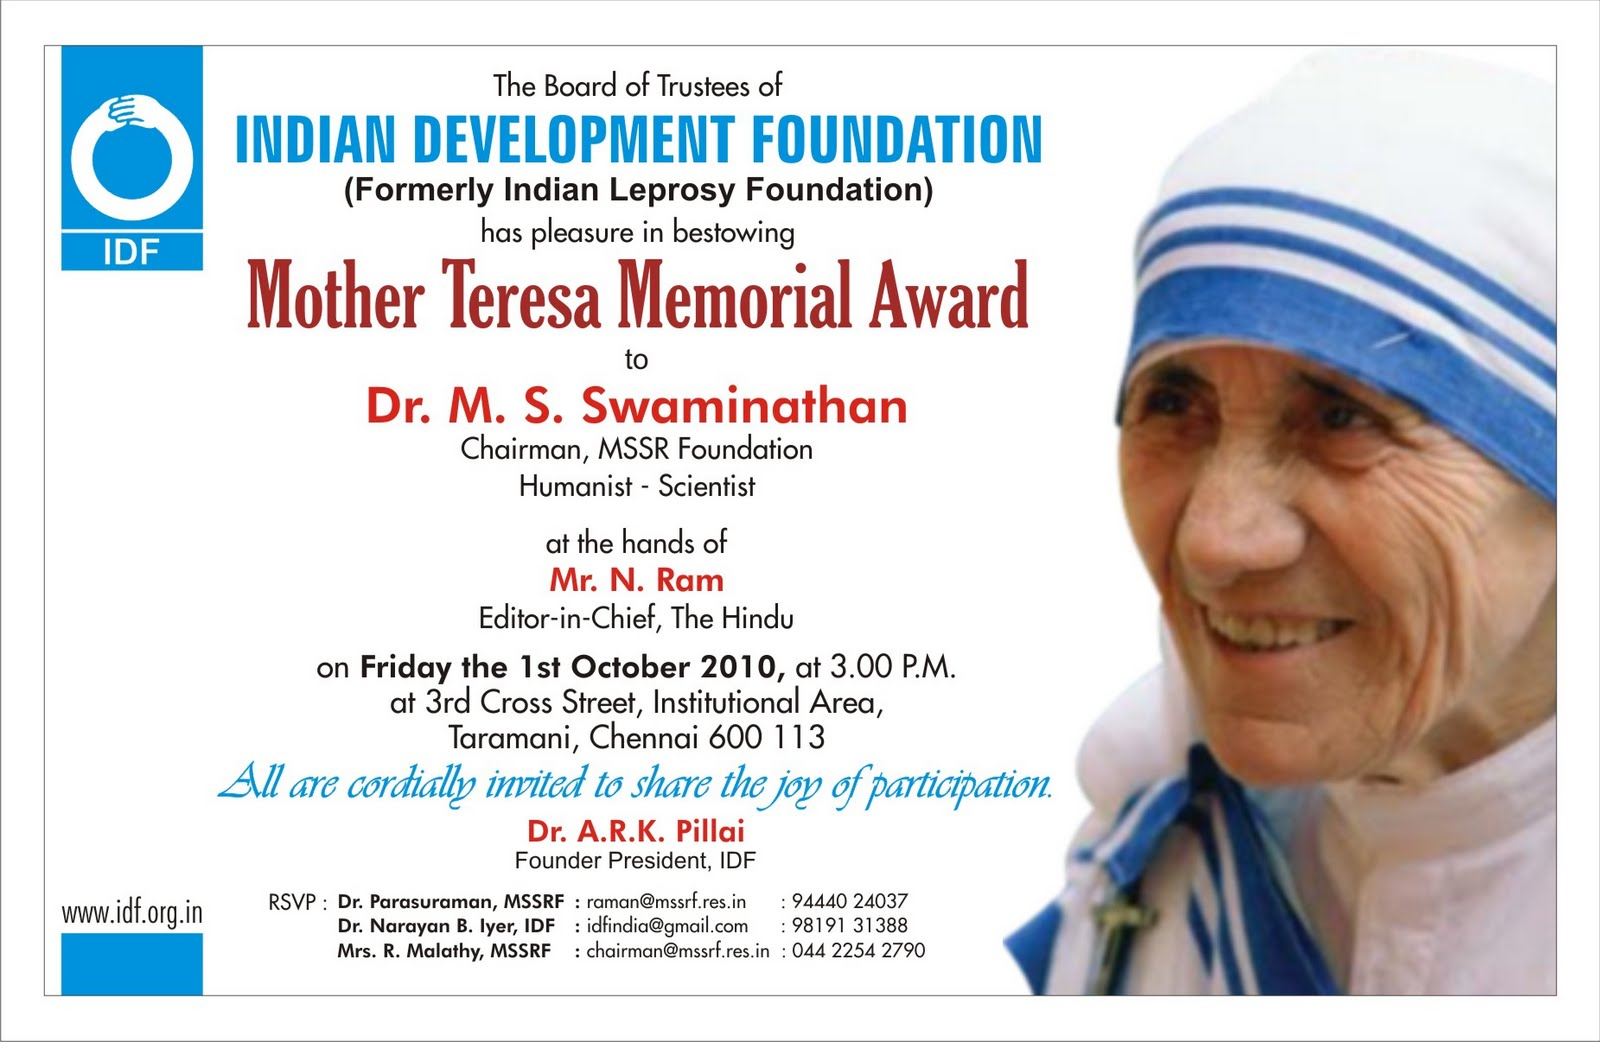 n development foundation 2010 dr m s swaminathan